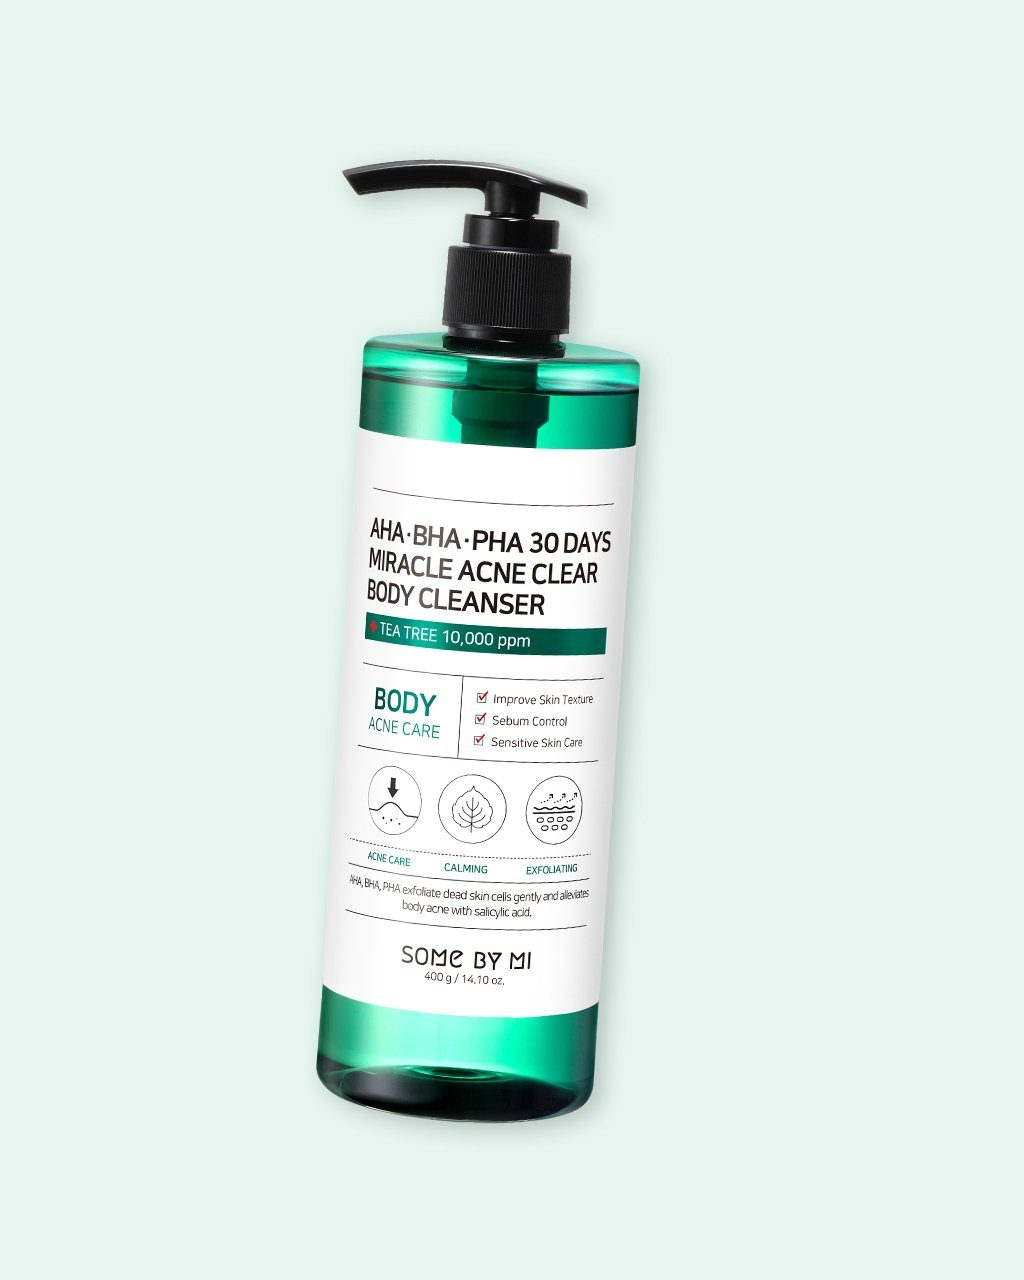 Some By Mi AHA-BHA-PHA 30Days Miracle Acne Clear Body Cleanser